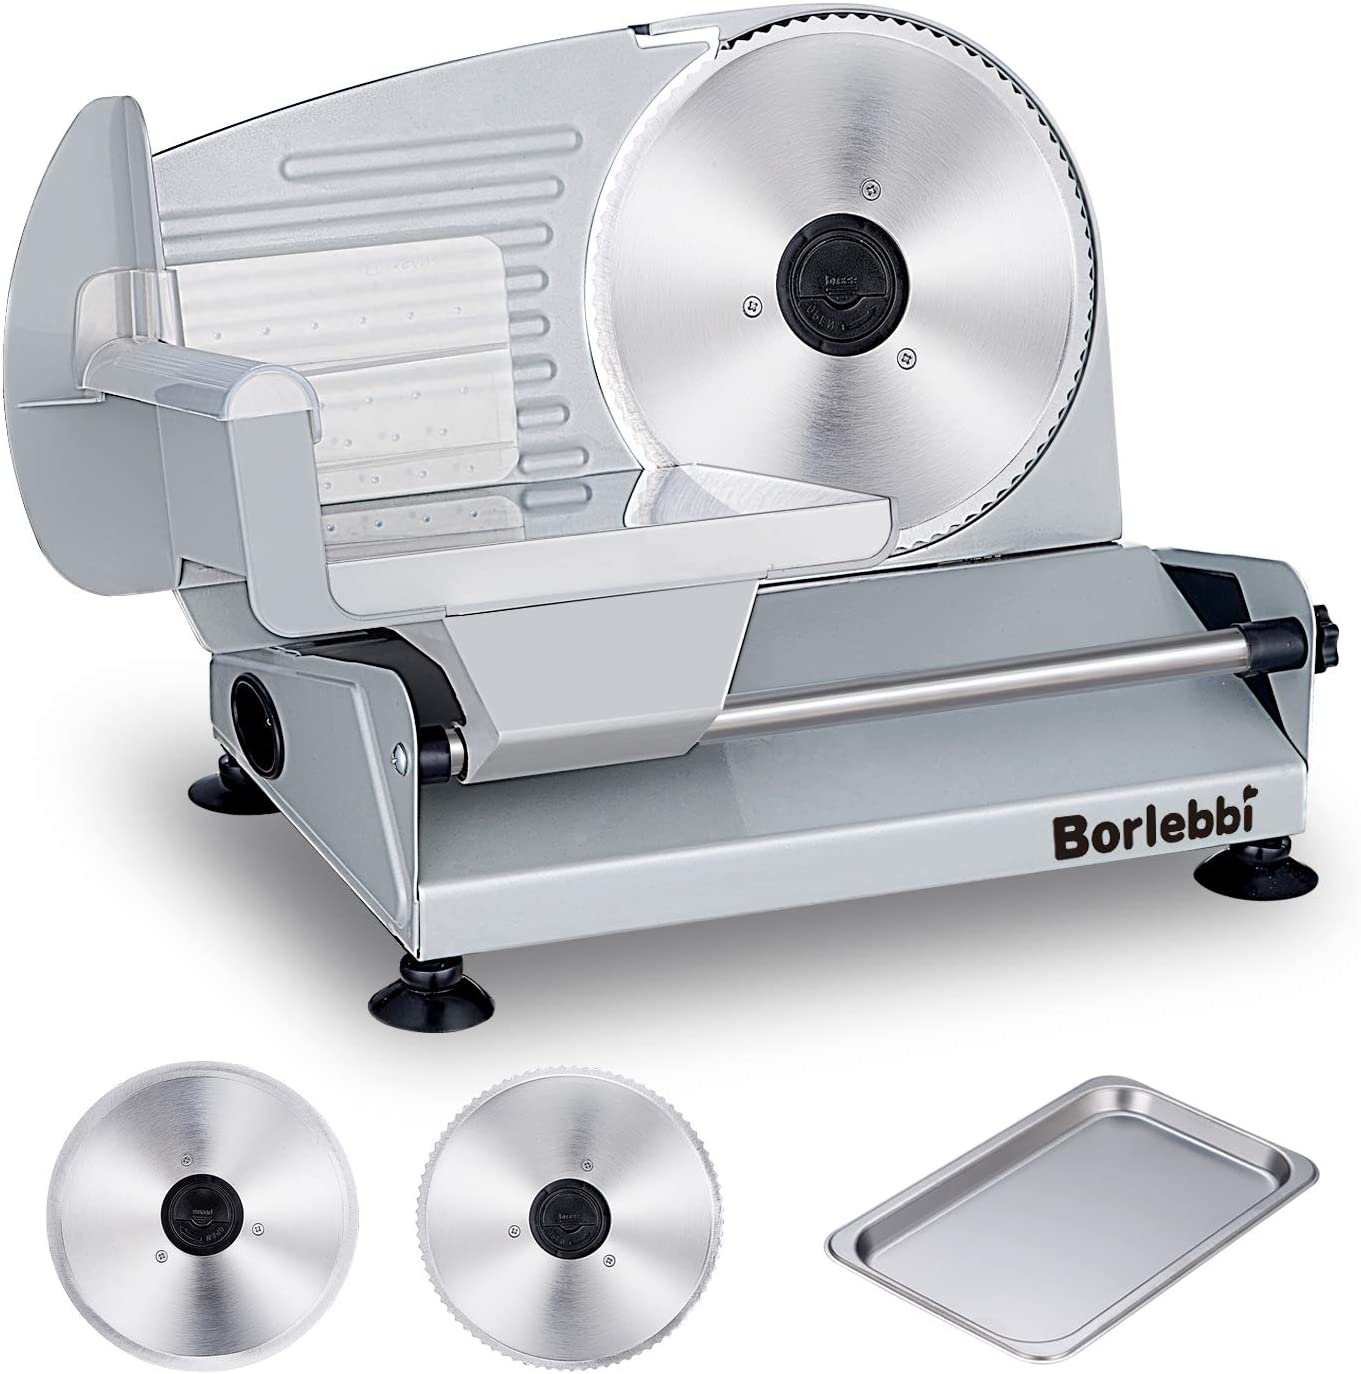 Meat Slicer, 200W Electric Food Slicer with Two Removable 7.5